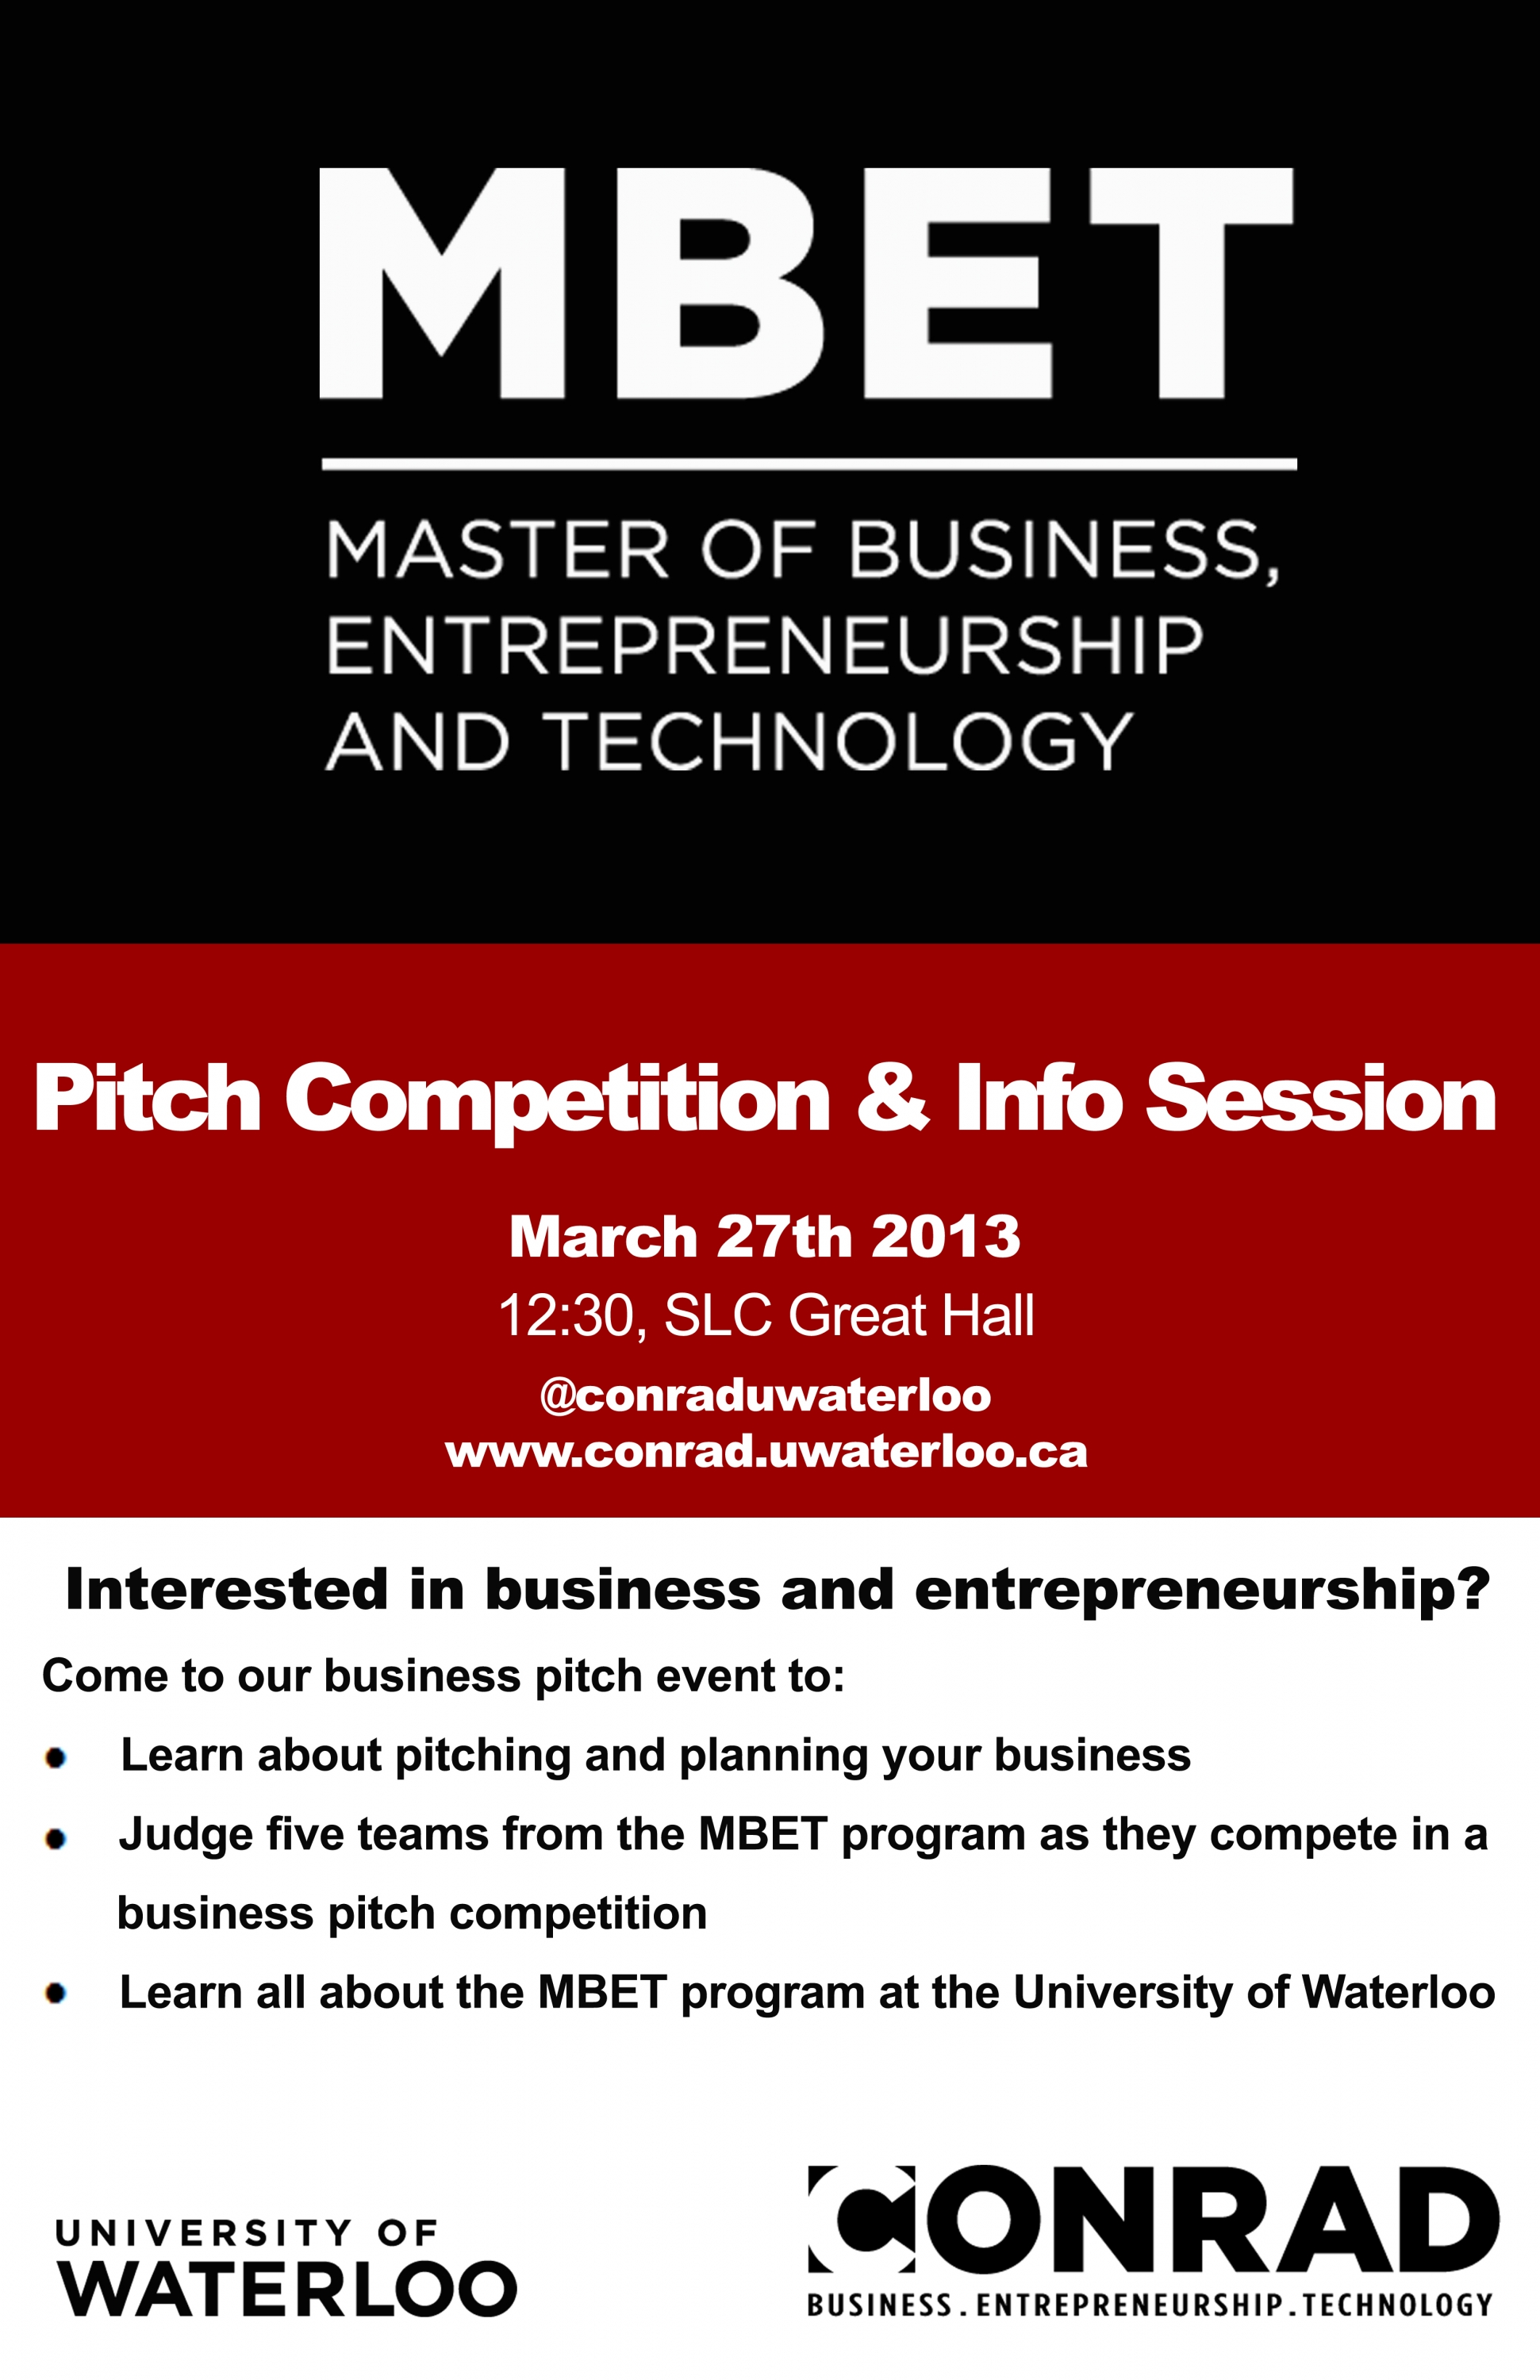 pitch demo and info session poster